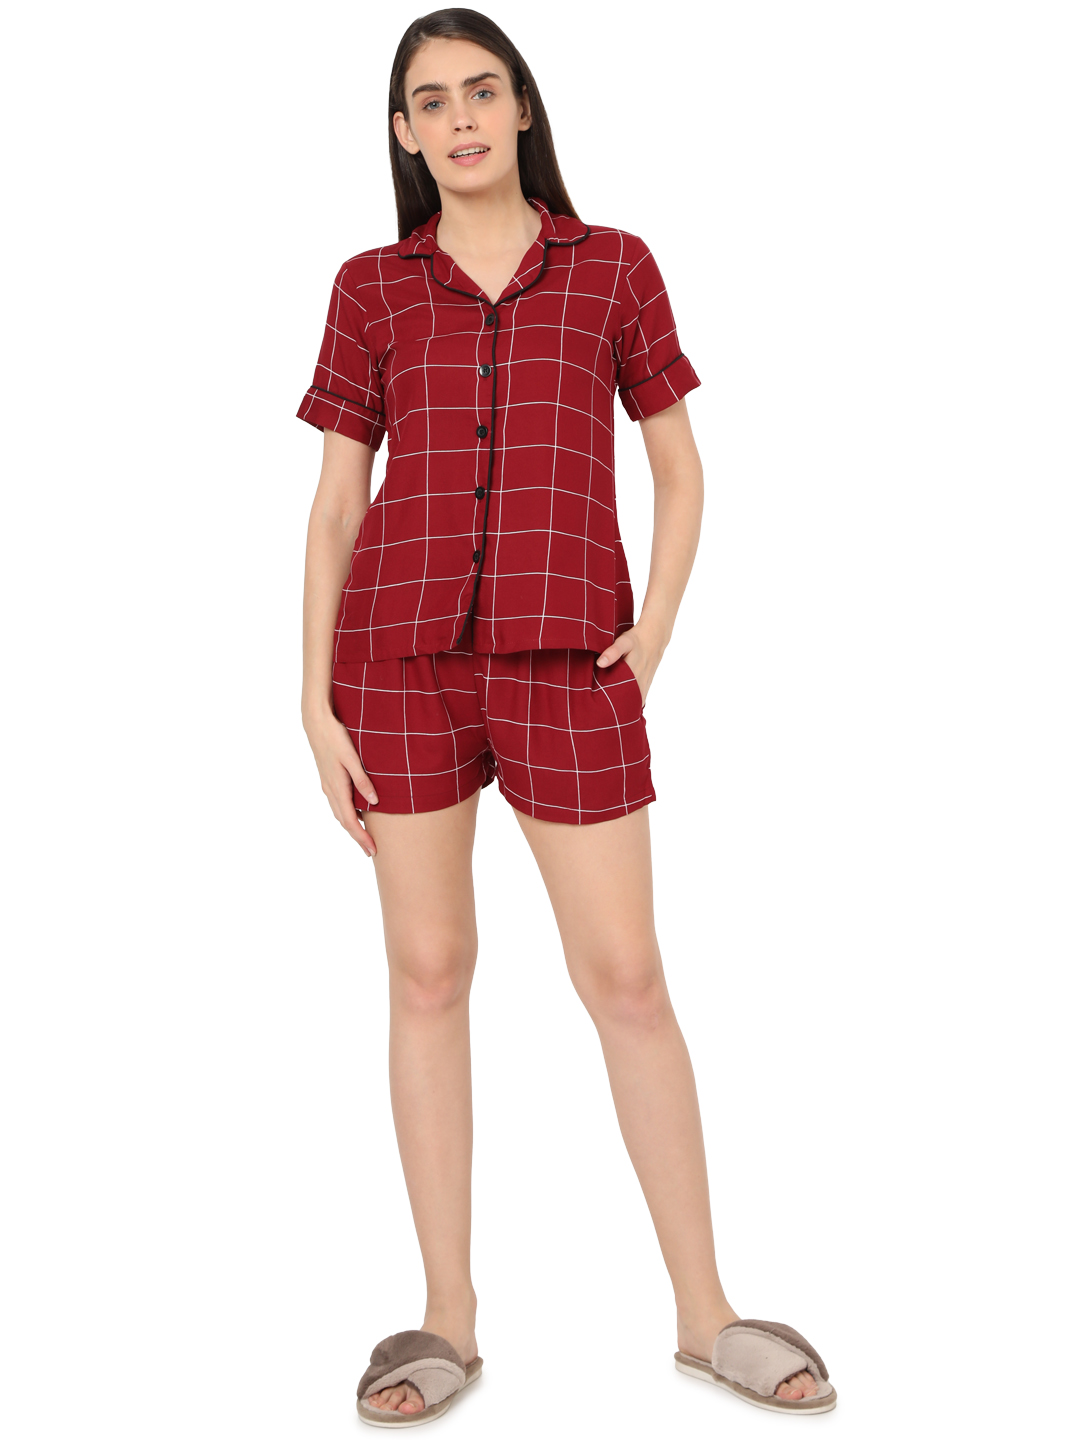 Smarty Pants   Smarty Pants women's maroon & white checkered printed night suit